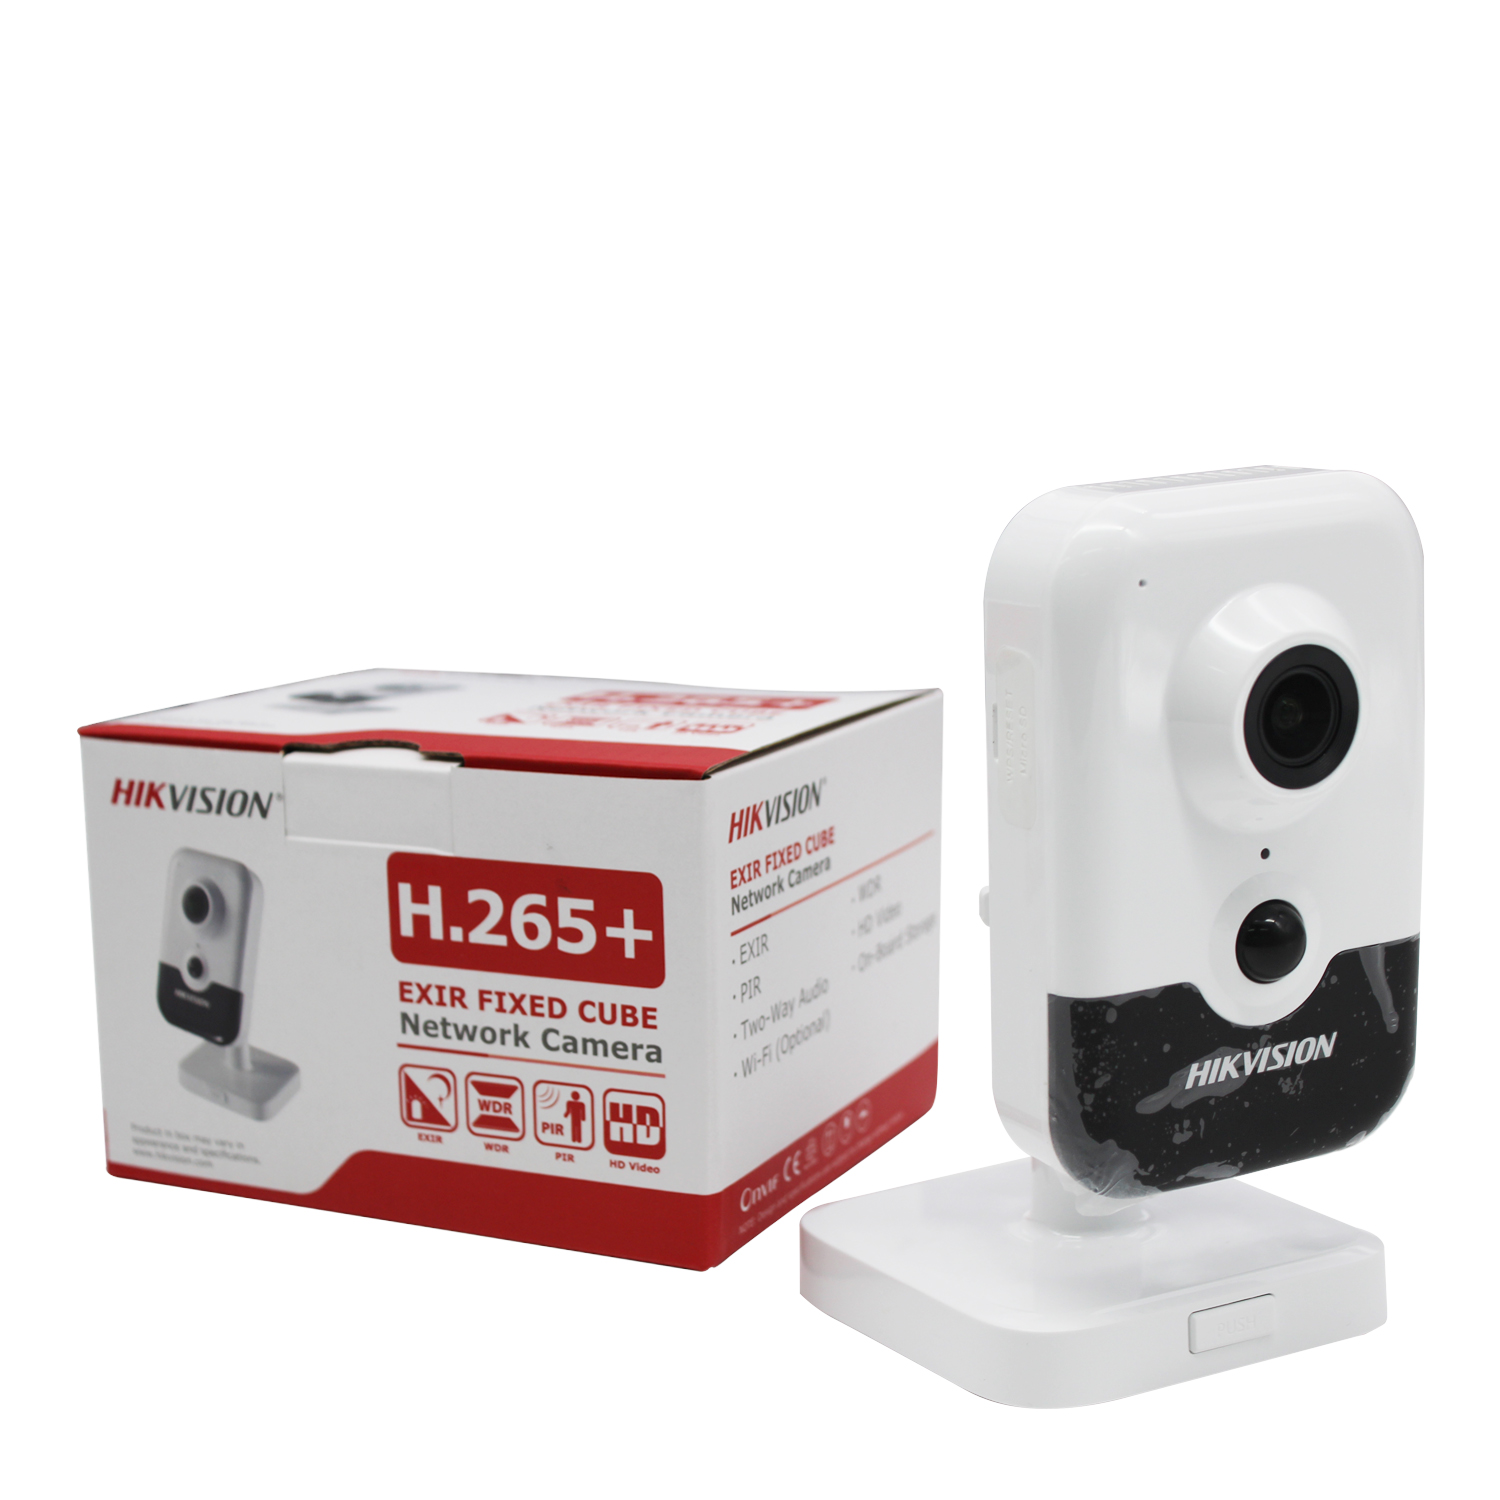 Original Hikvision 6MP WiFi cámara IP DS 2CD2463G0 IW HD cámara de seguridad inalámbrica hogareña H.265 Audio bidireccional ranura SD P2P IR 10M - 5